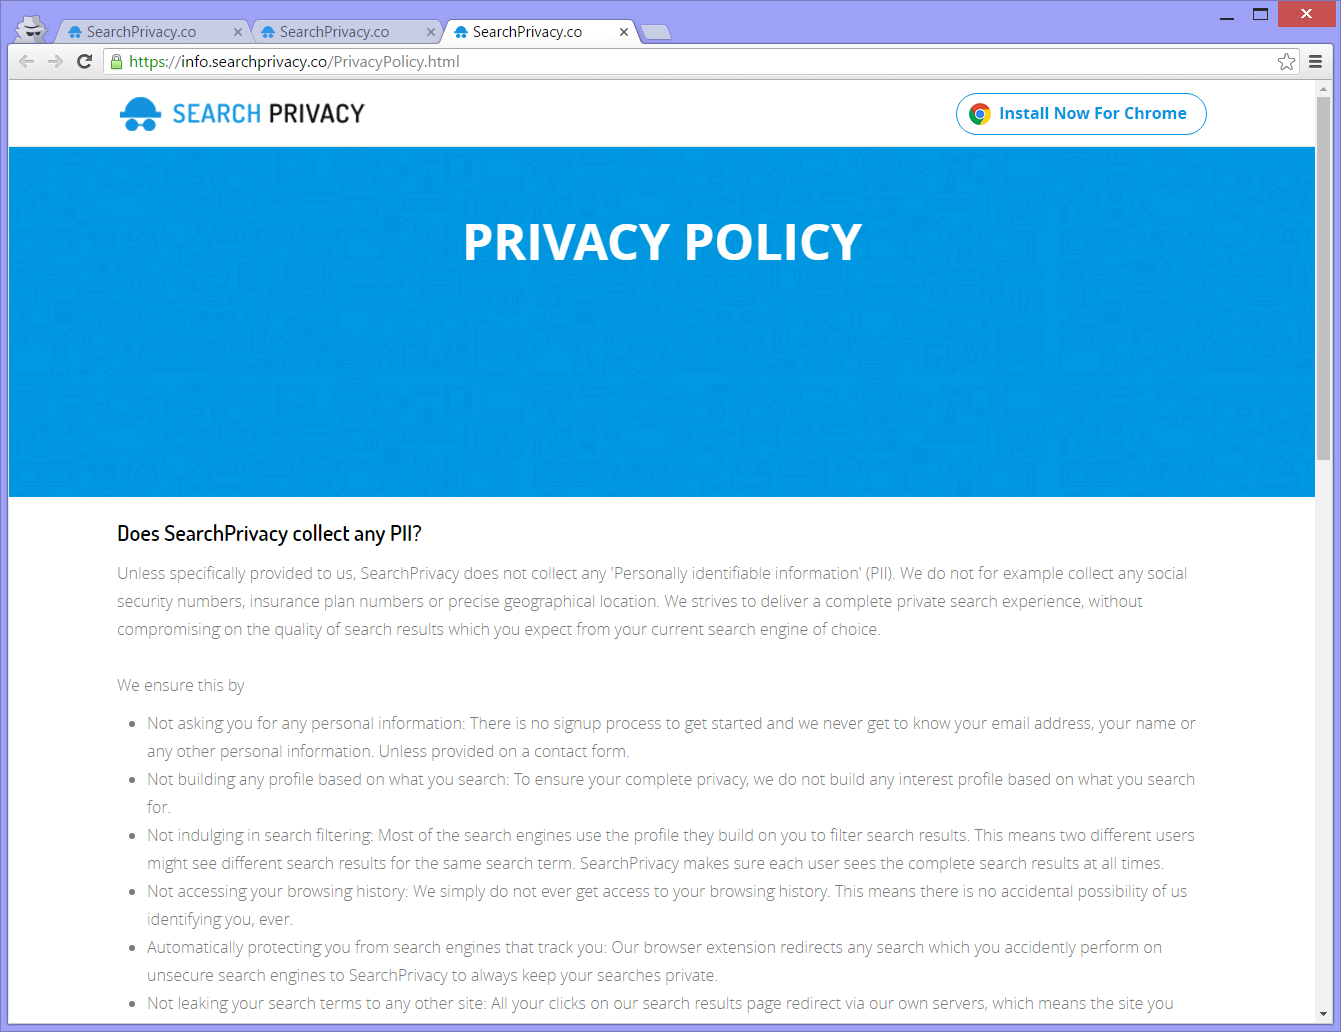 STF-search-privacy-co-searchprivacy-privacy-policy